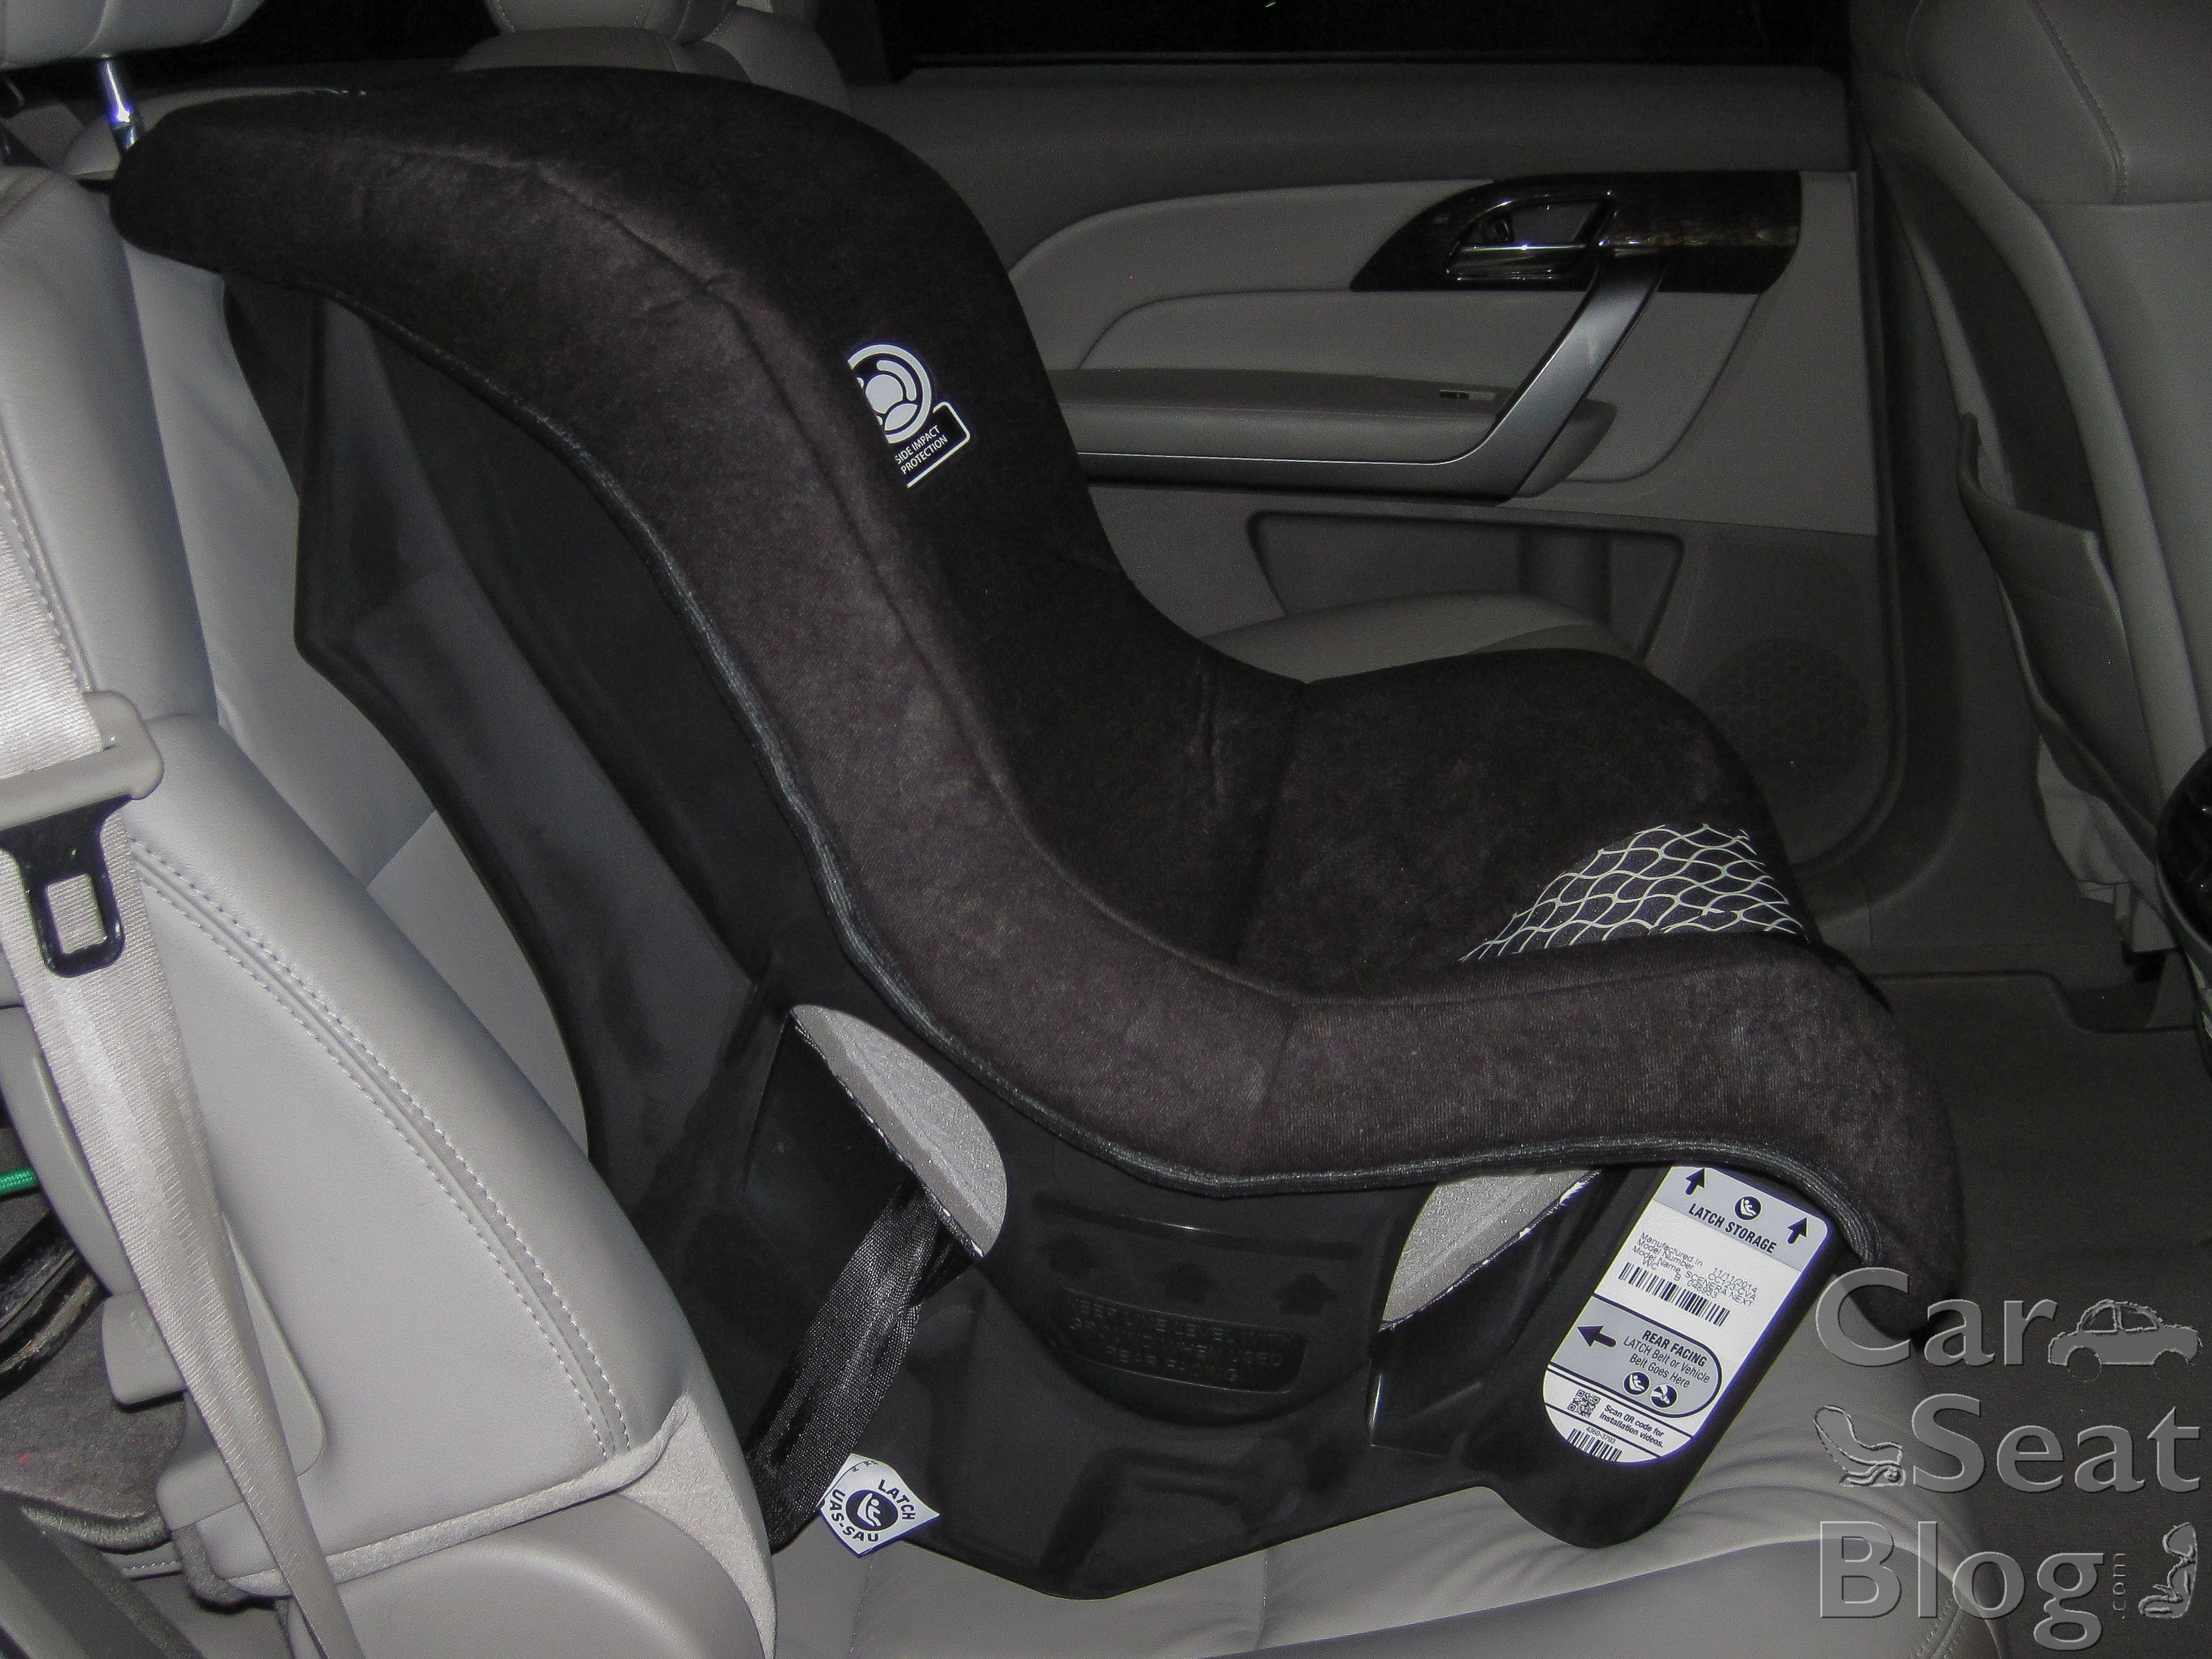 Cosco Car Seat Scenera Installation Instructions Rh Notonthetest Com